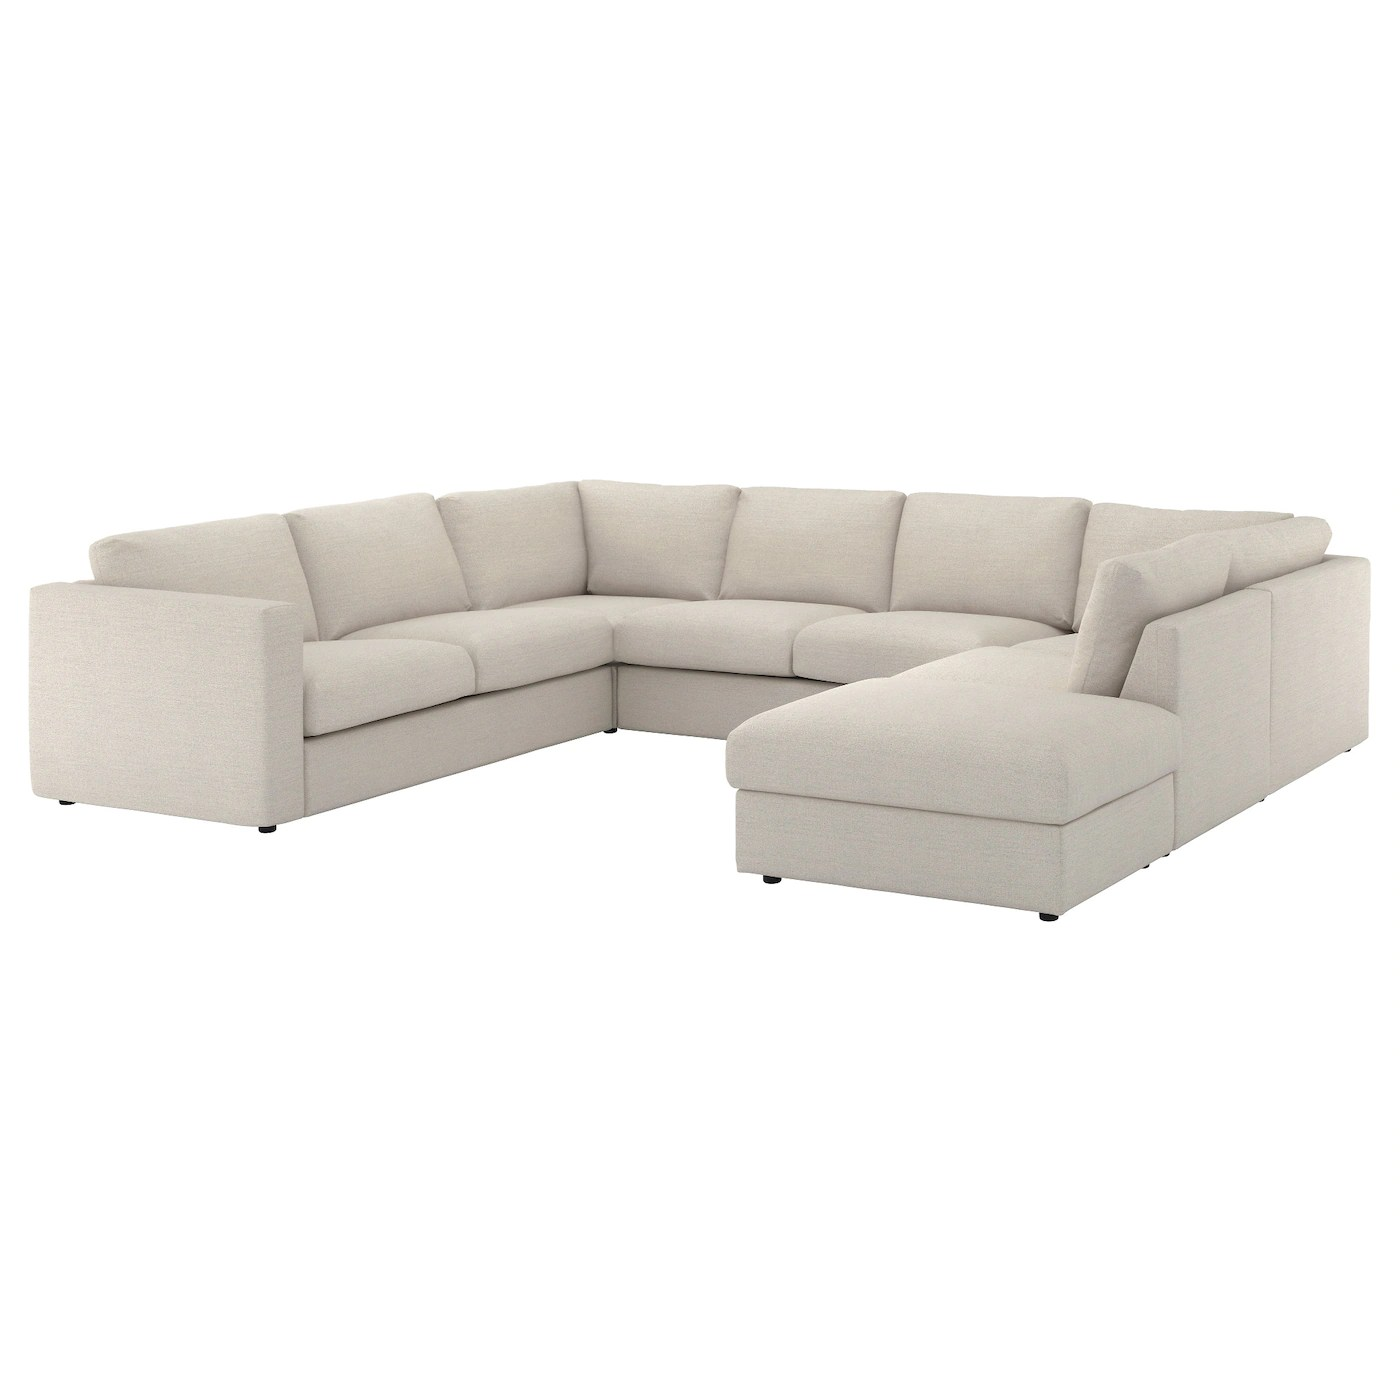 U Form Sofa Ikea Vimle U Shaped Sofa 6 Seat With Open End Gunnared Beige